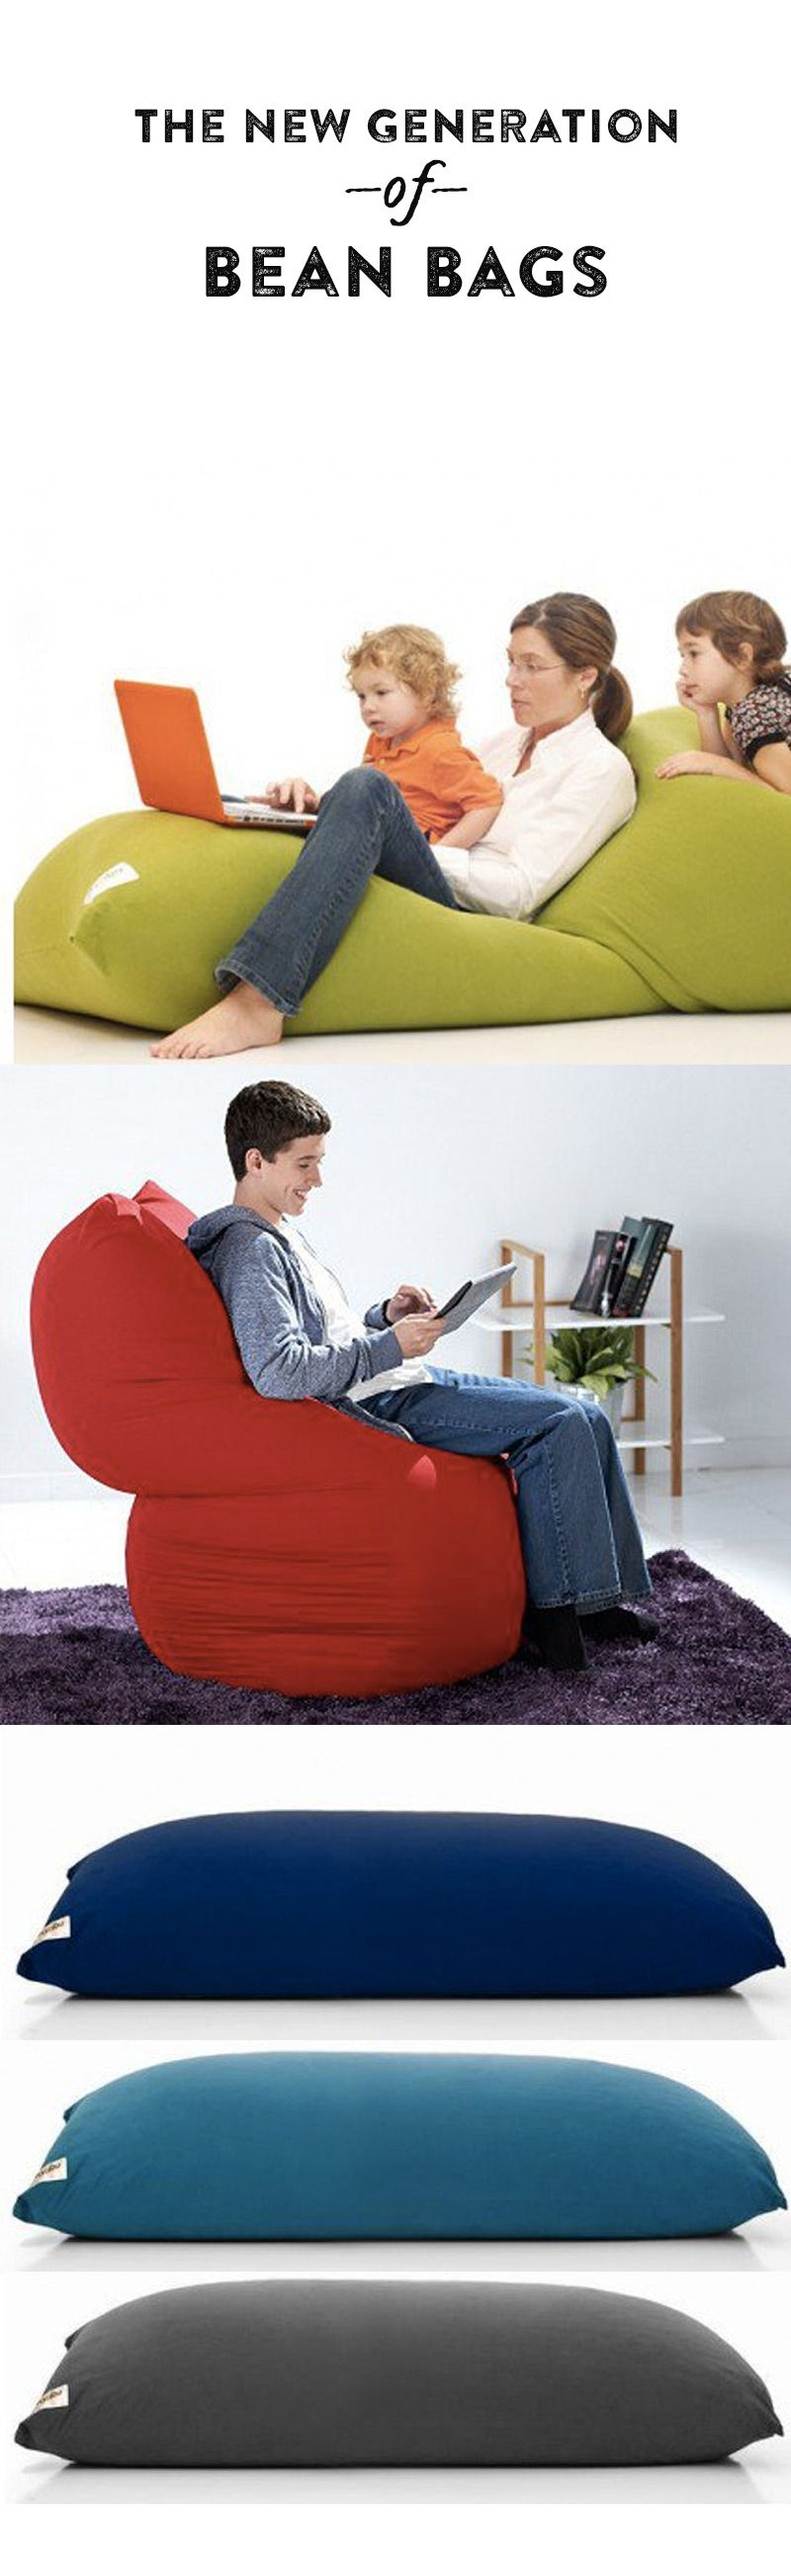 A Yogibo may resemble an old school bean bag chair but it